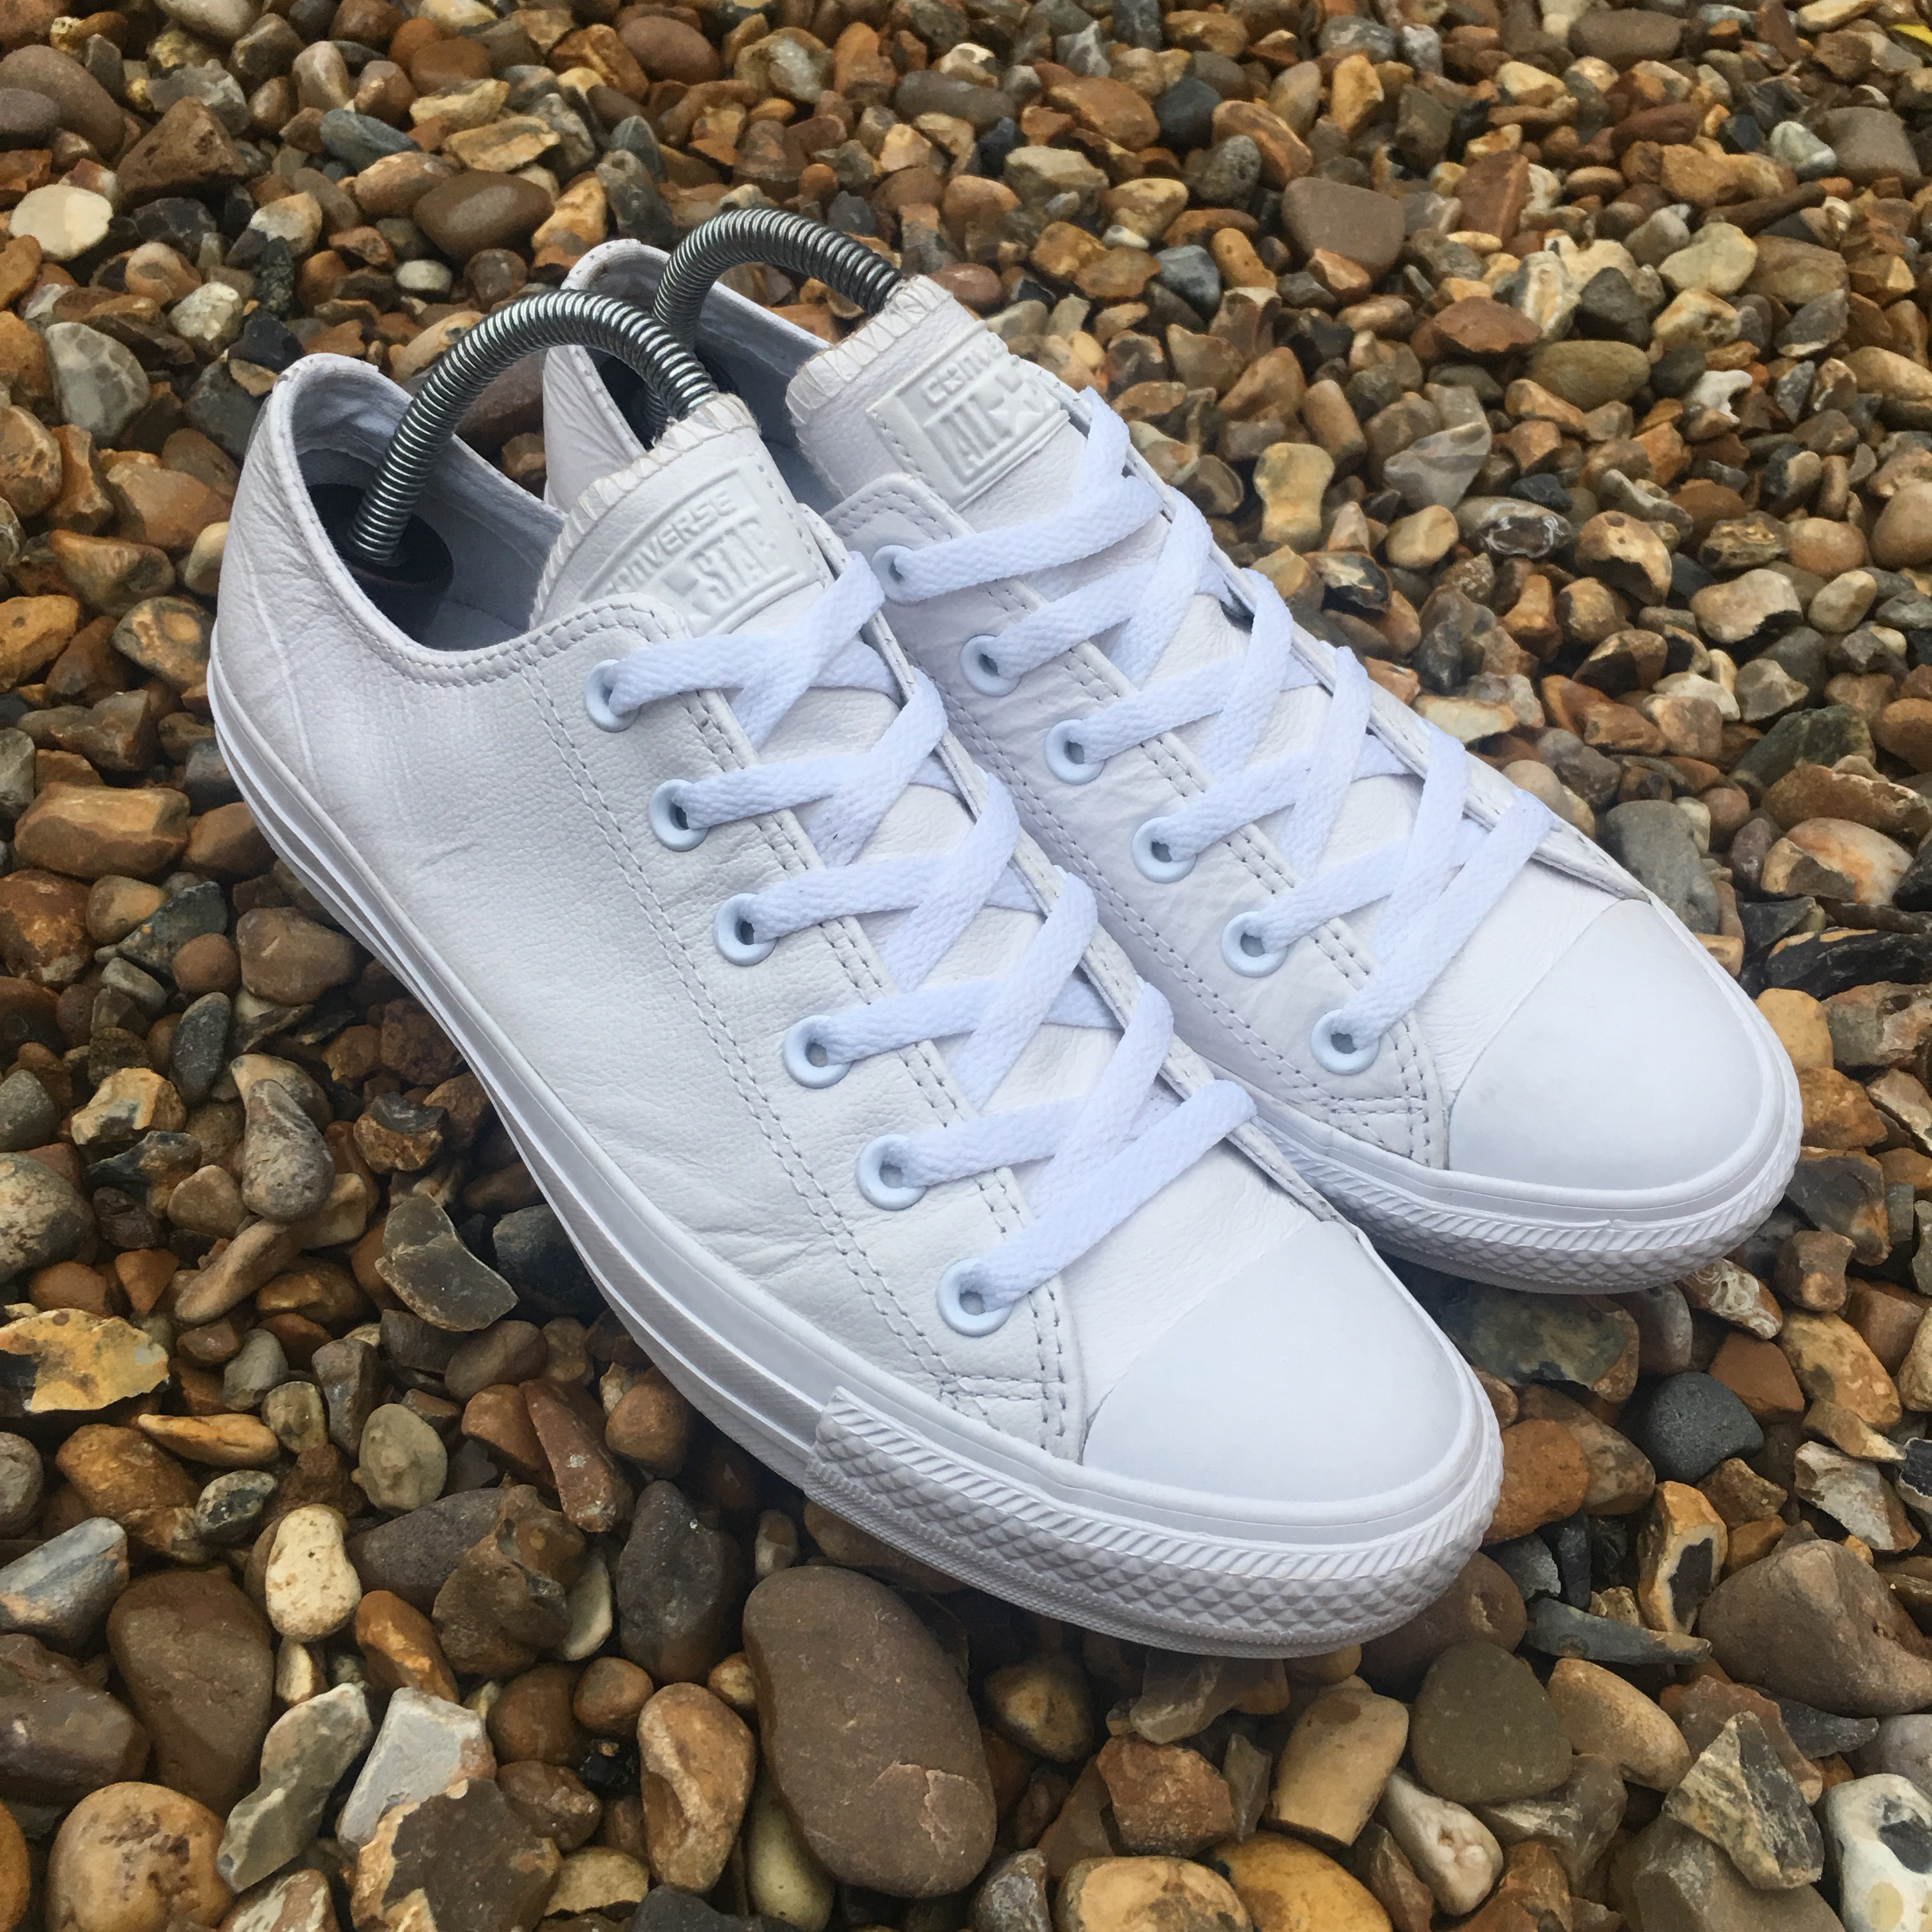 Converse Low White Leather Shoes UK 8. Trainers are